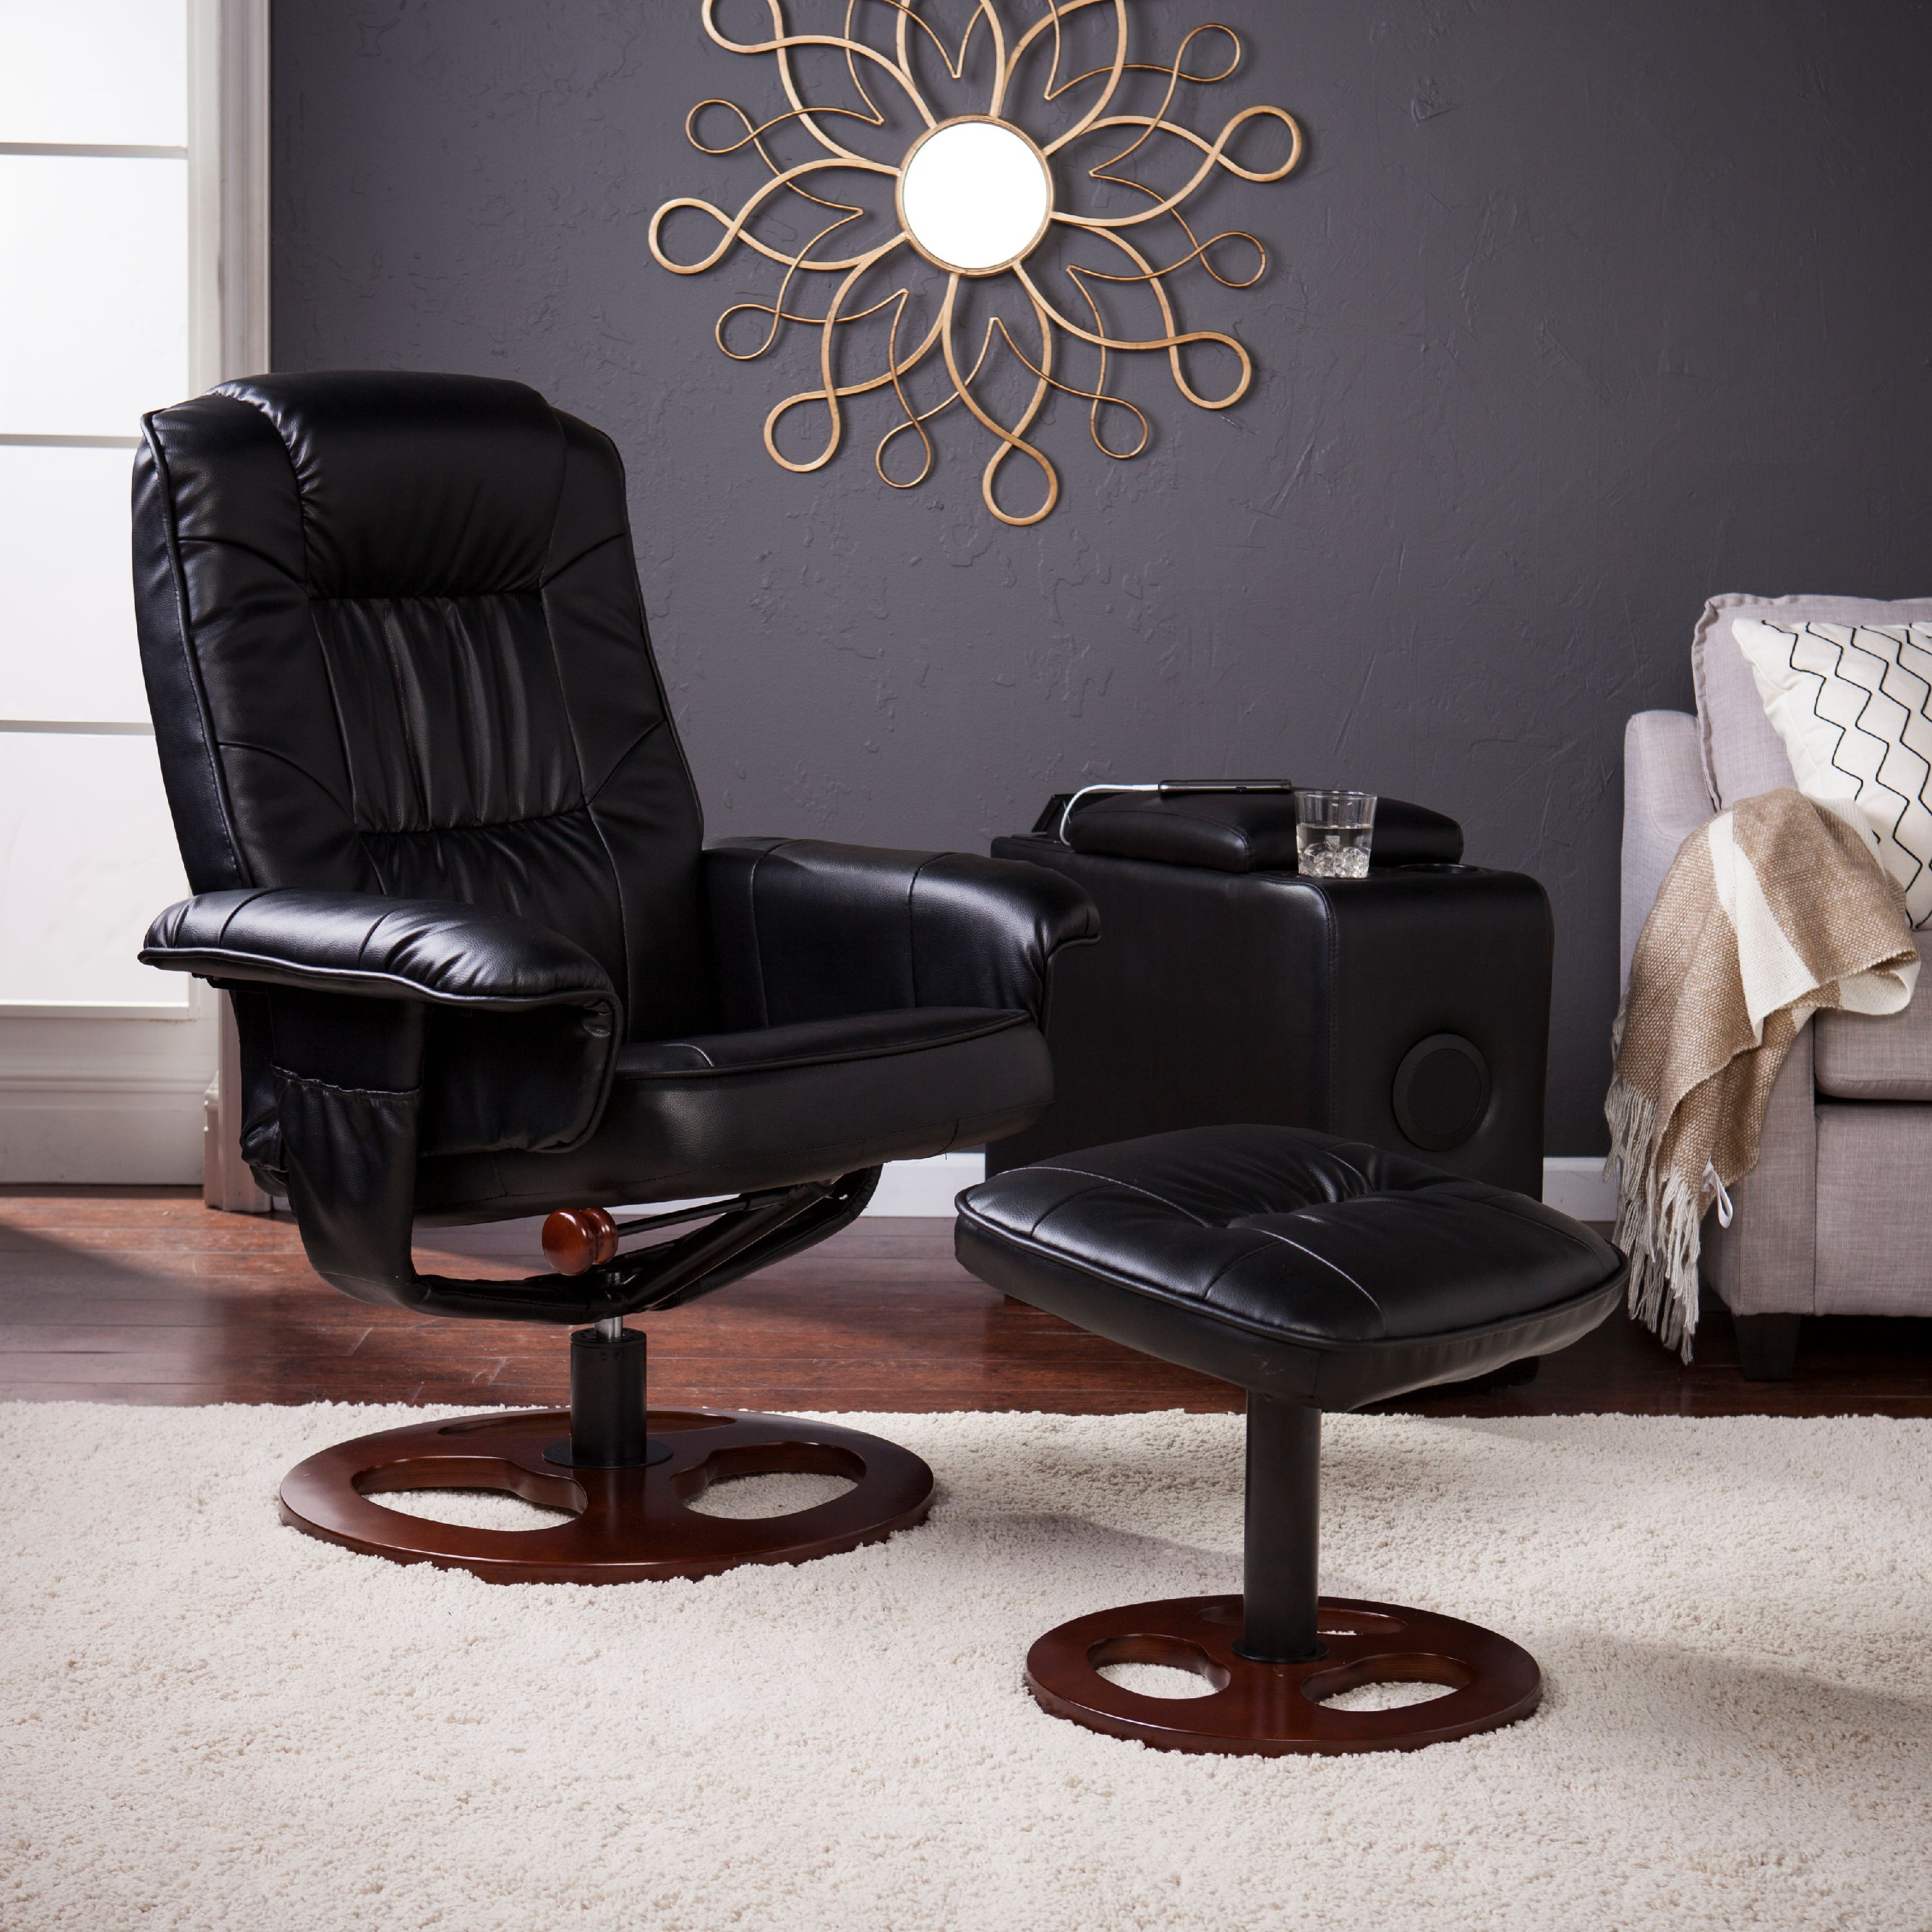 Southern Enterprises Lirrados Faux Leather Swivel Recliner with Ottoman, Black